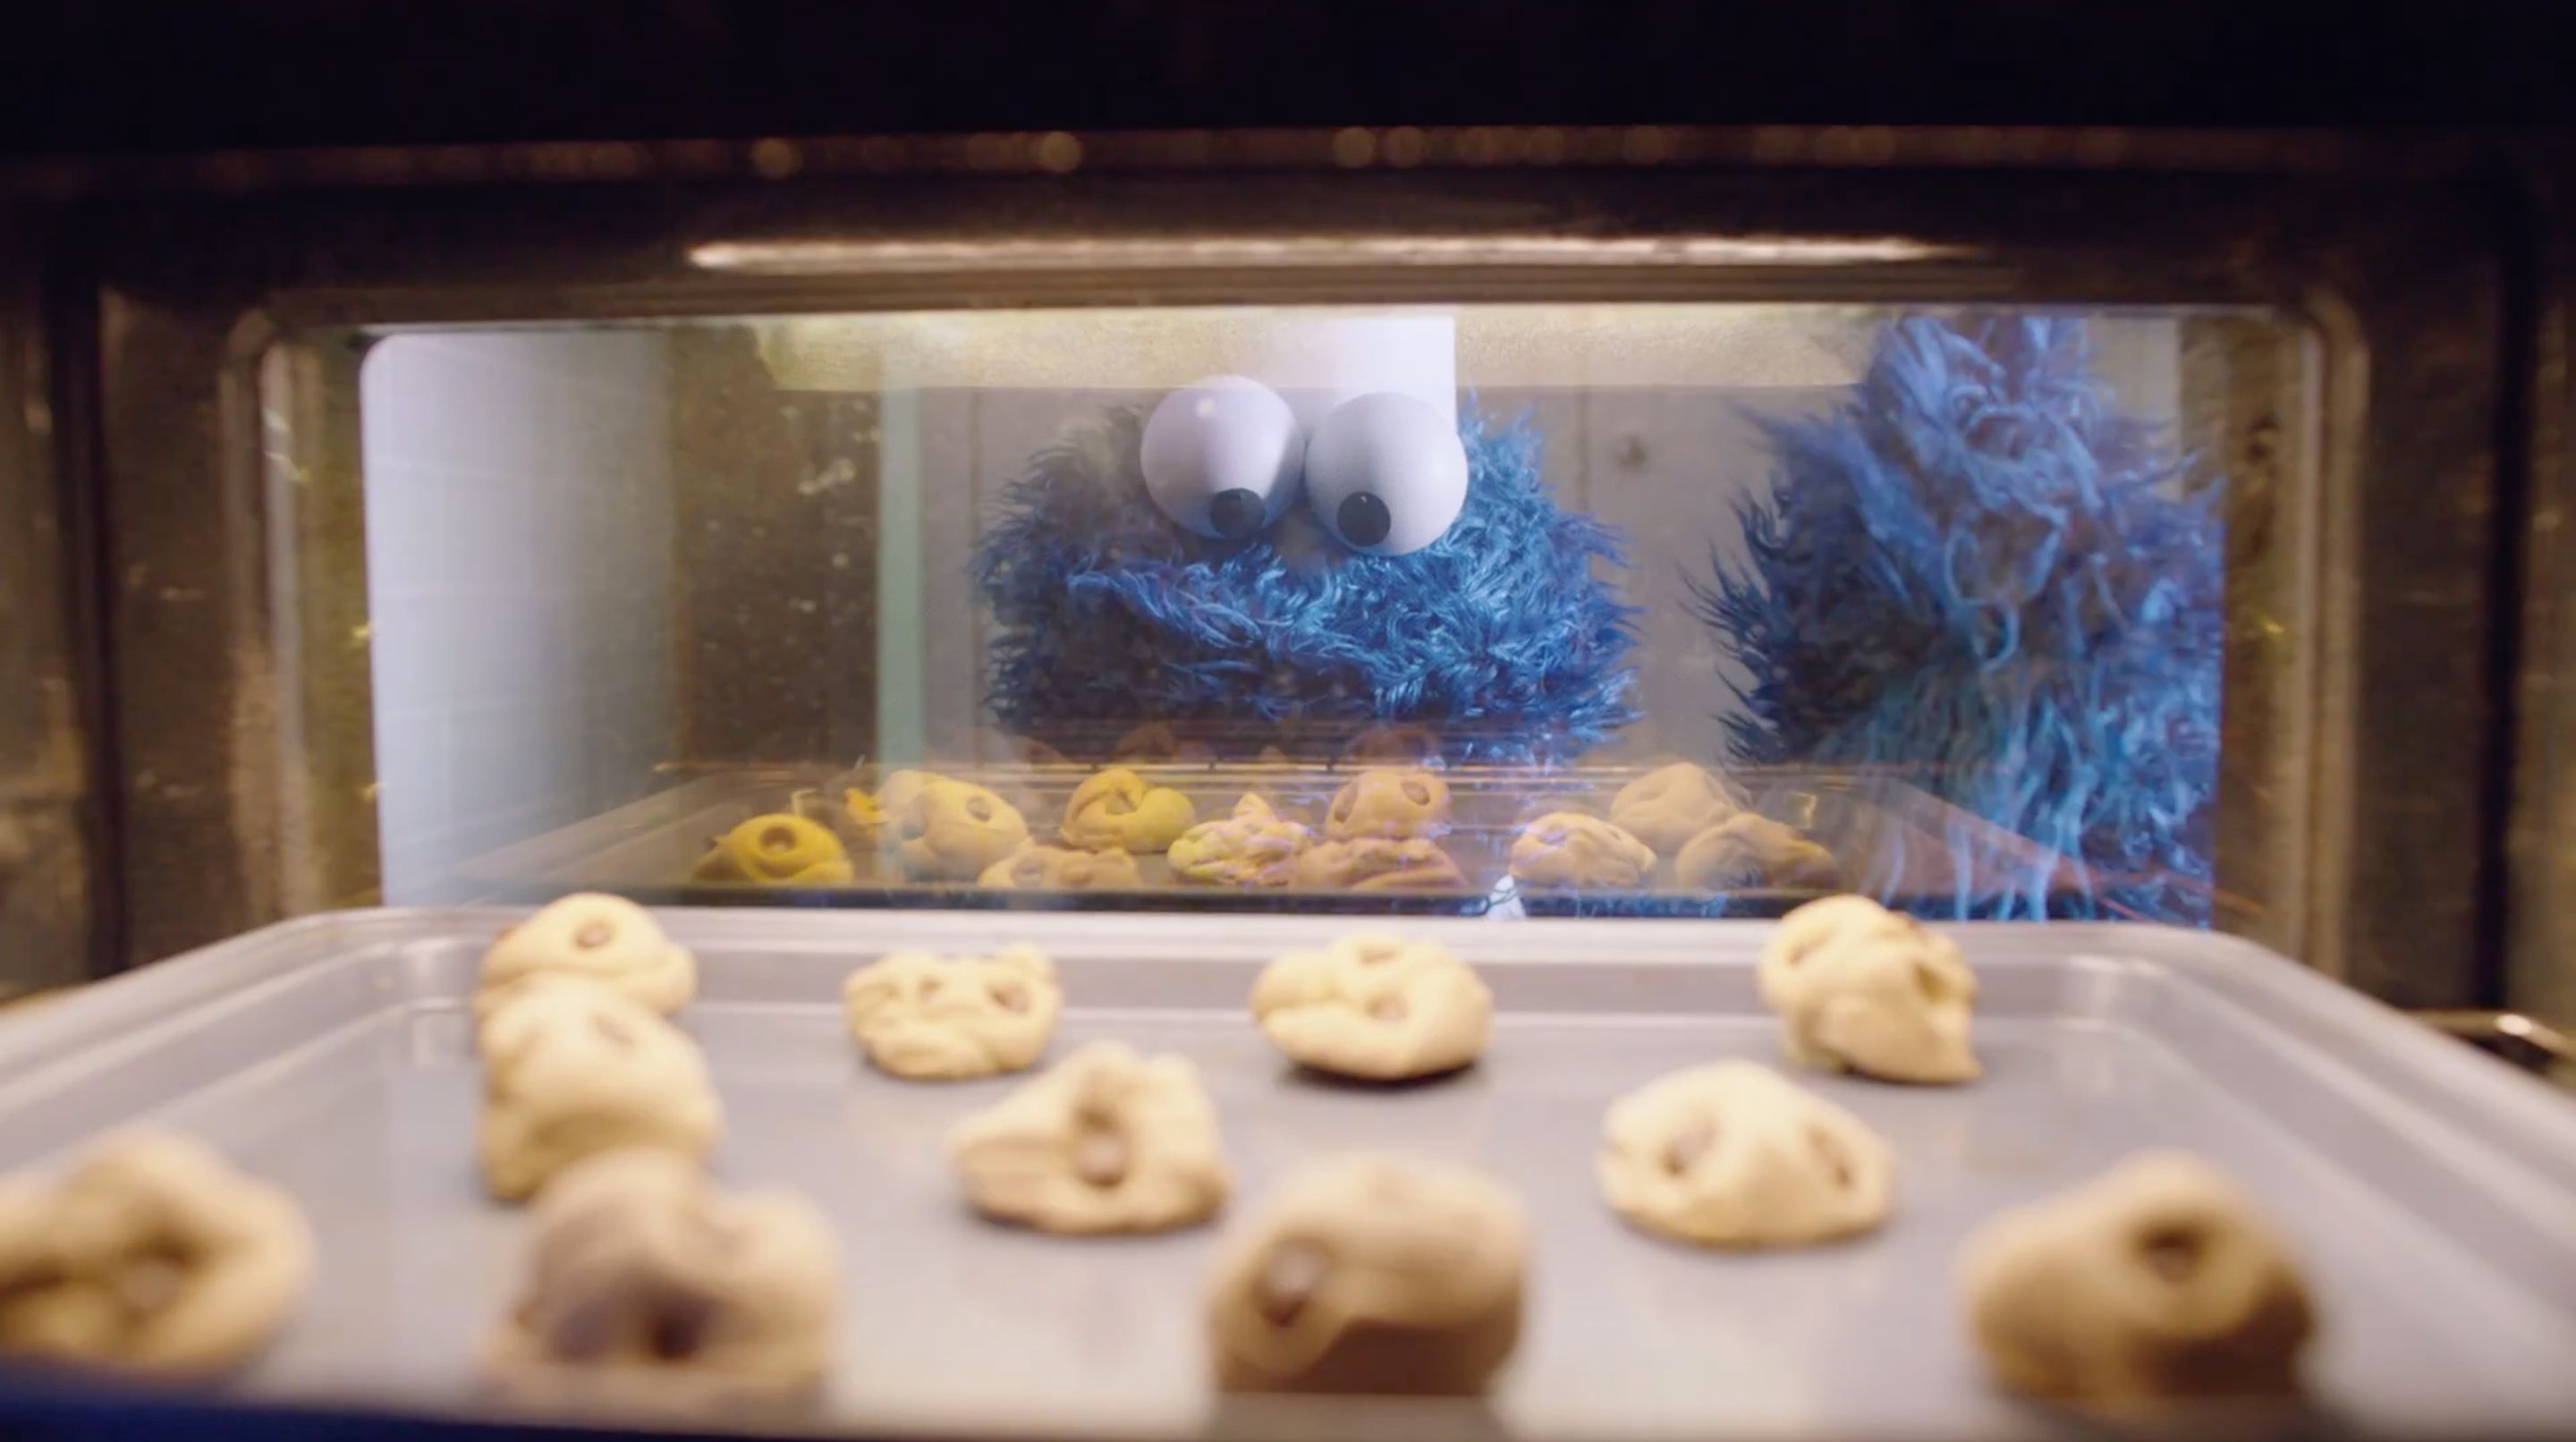 The Cookie Monster baking his cookies